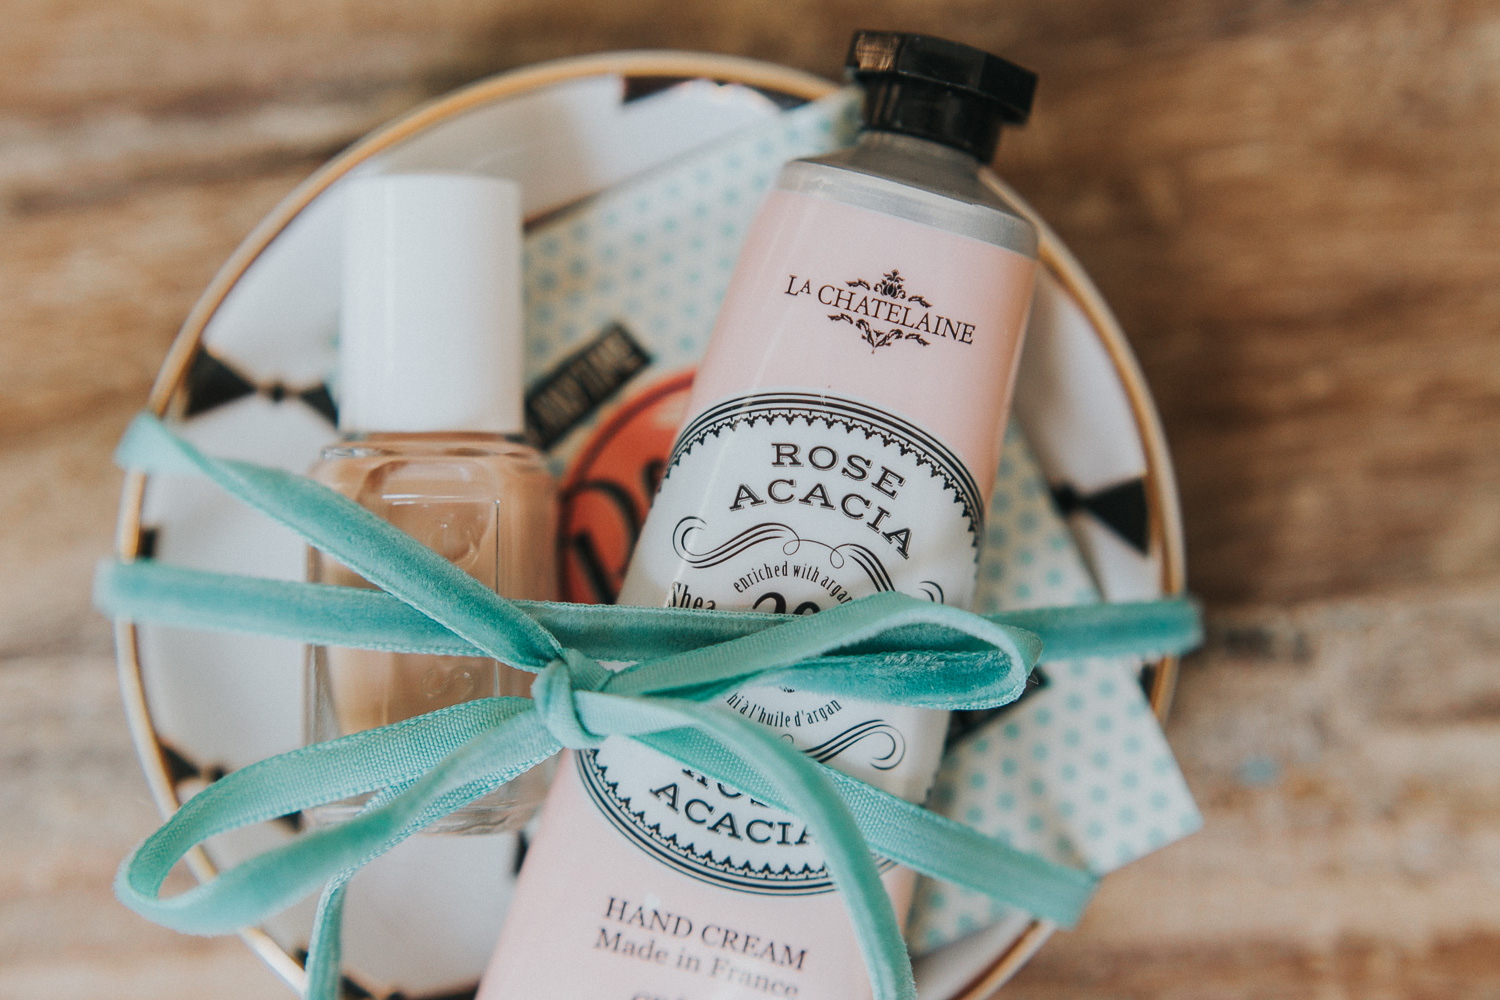 client_engagement_shoot_prep_kit_gift (14 of 19).jpg